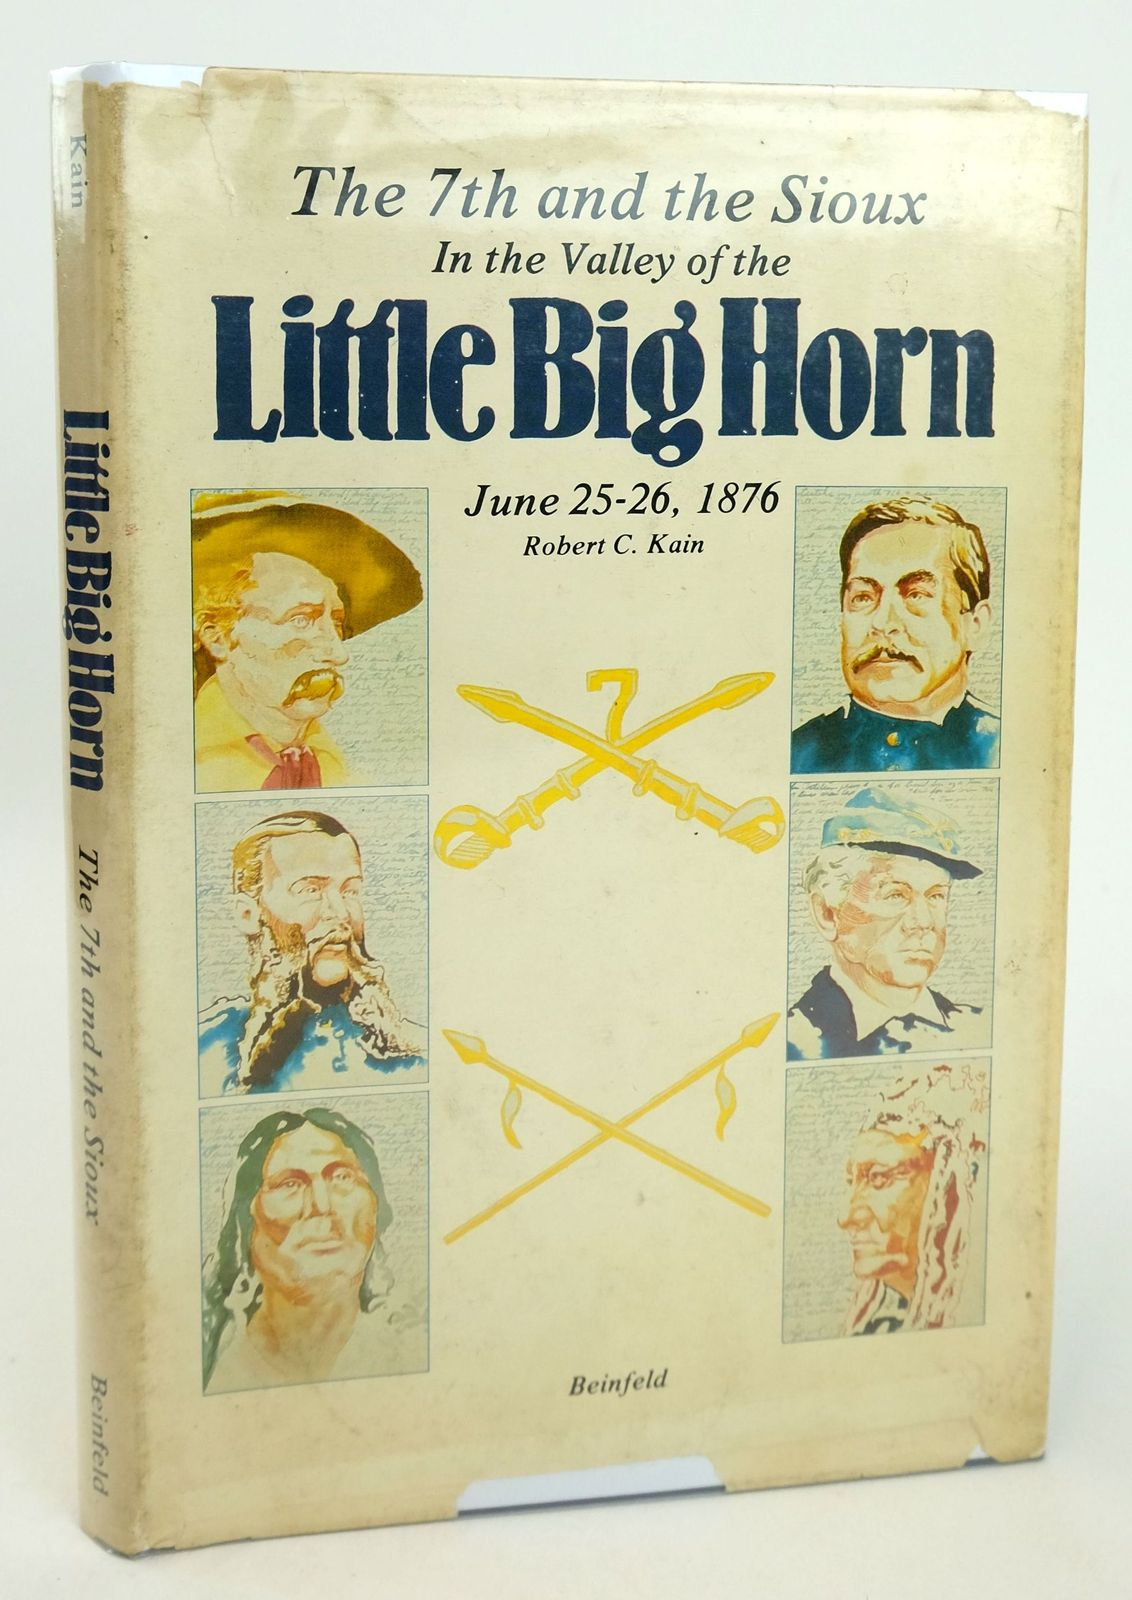 Photo of IN THE VALLEY OF THE LITTLE BIG HORN: THE 7TH AND THE SIOUX JUNE 25-26, 1876 written by Kain, Robert C. published by Beinfeld Publishing Inc. (STOCK CODE: 1819271)  for sale by Stella & Rose's Books